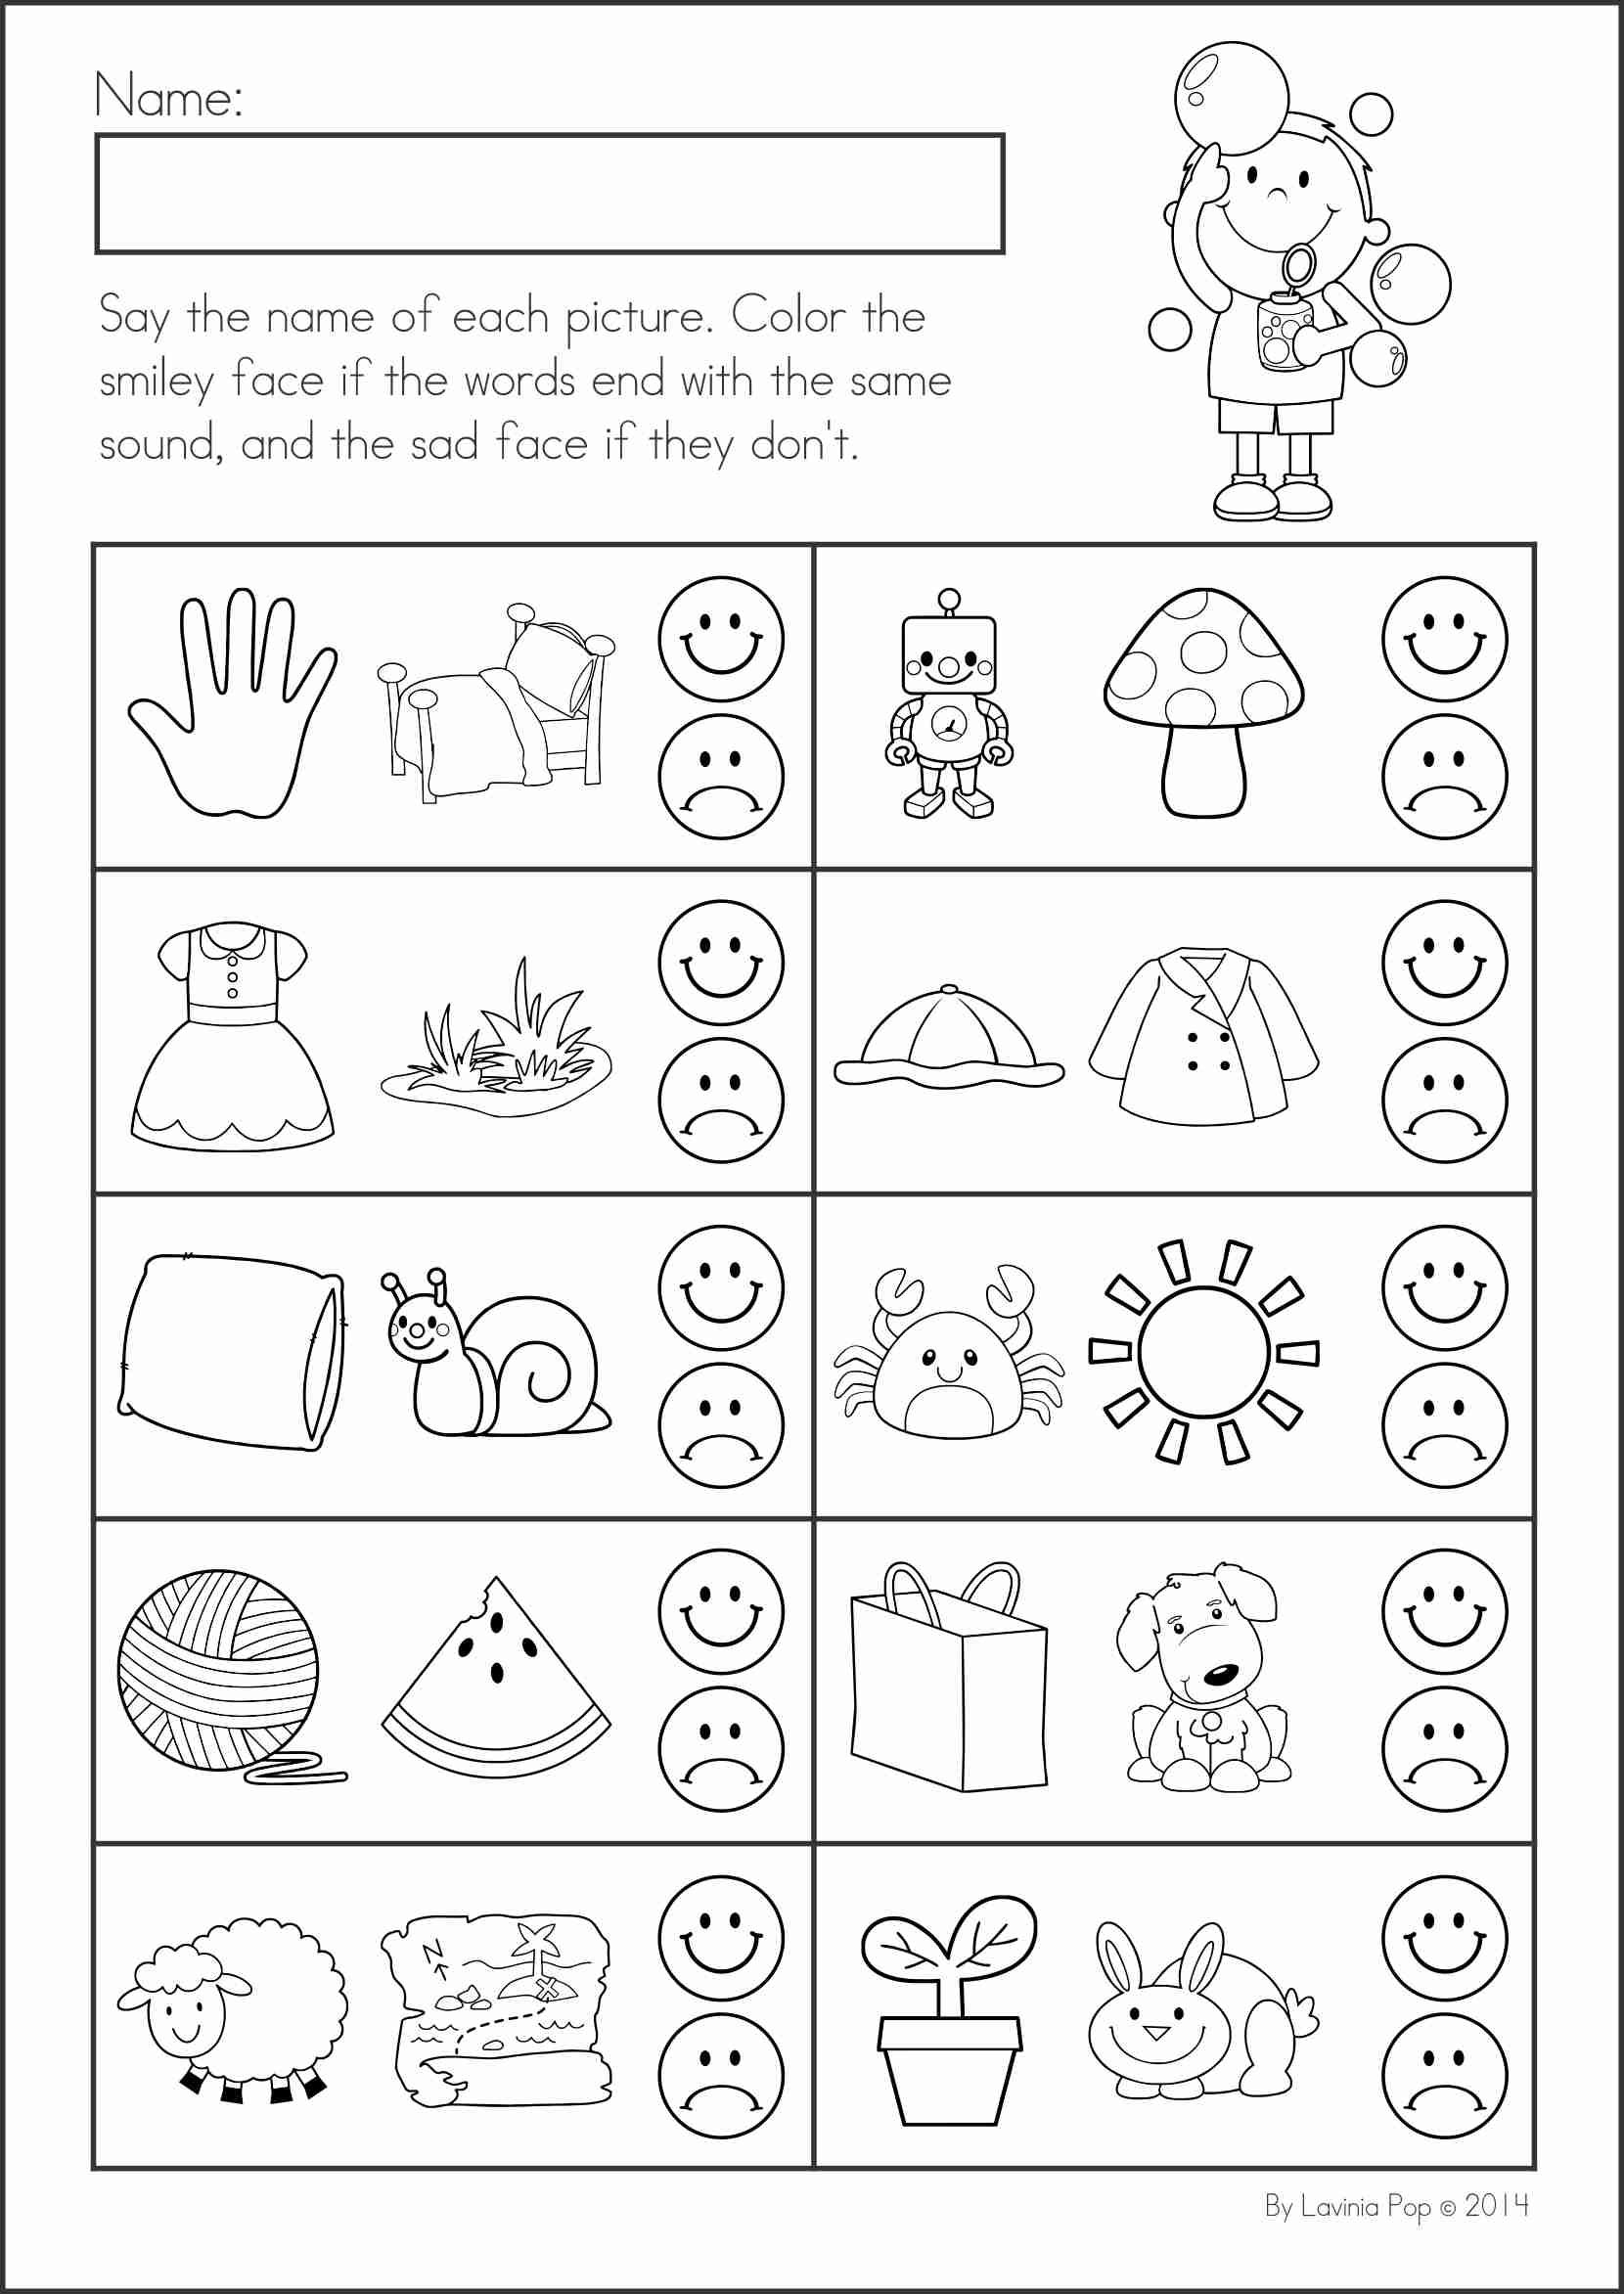 Uncategorized Ending Sound Worksheets summer review literacy and worksheets kindergarten math activities 104 pages a page from